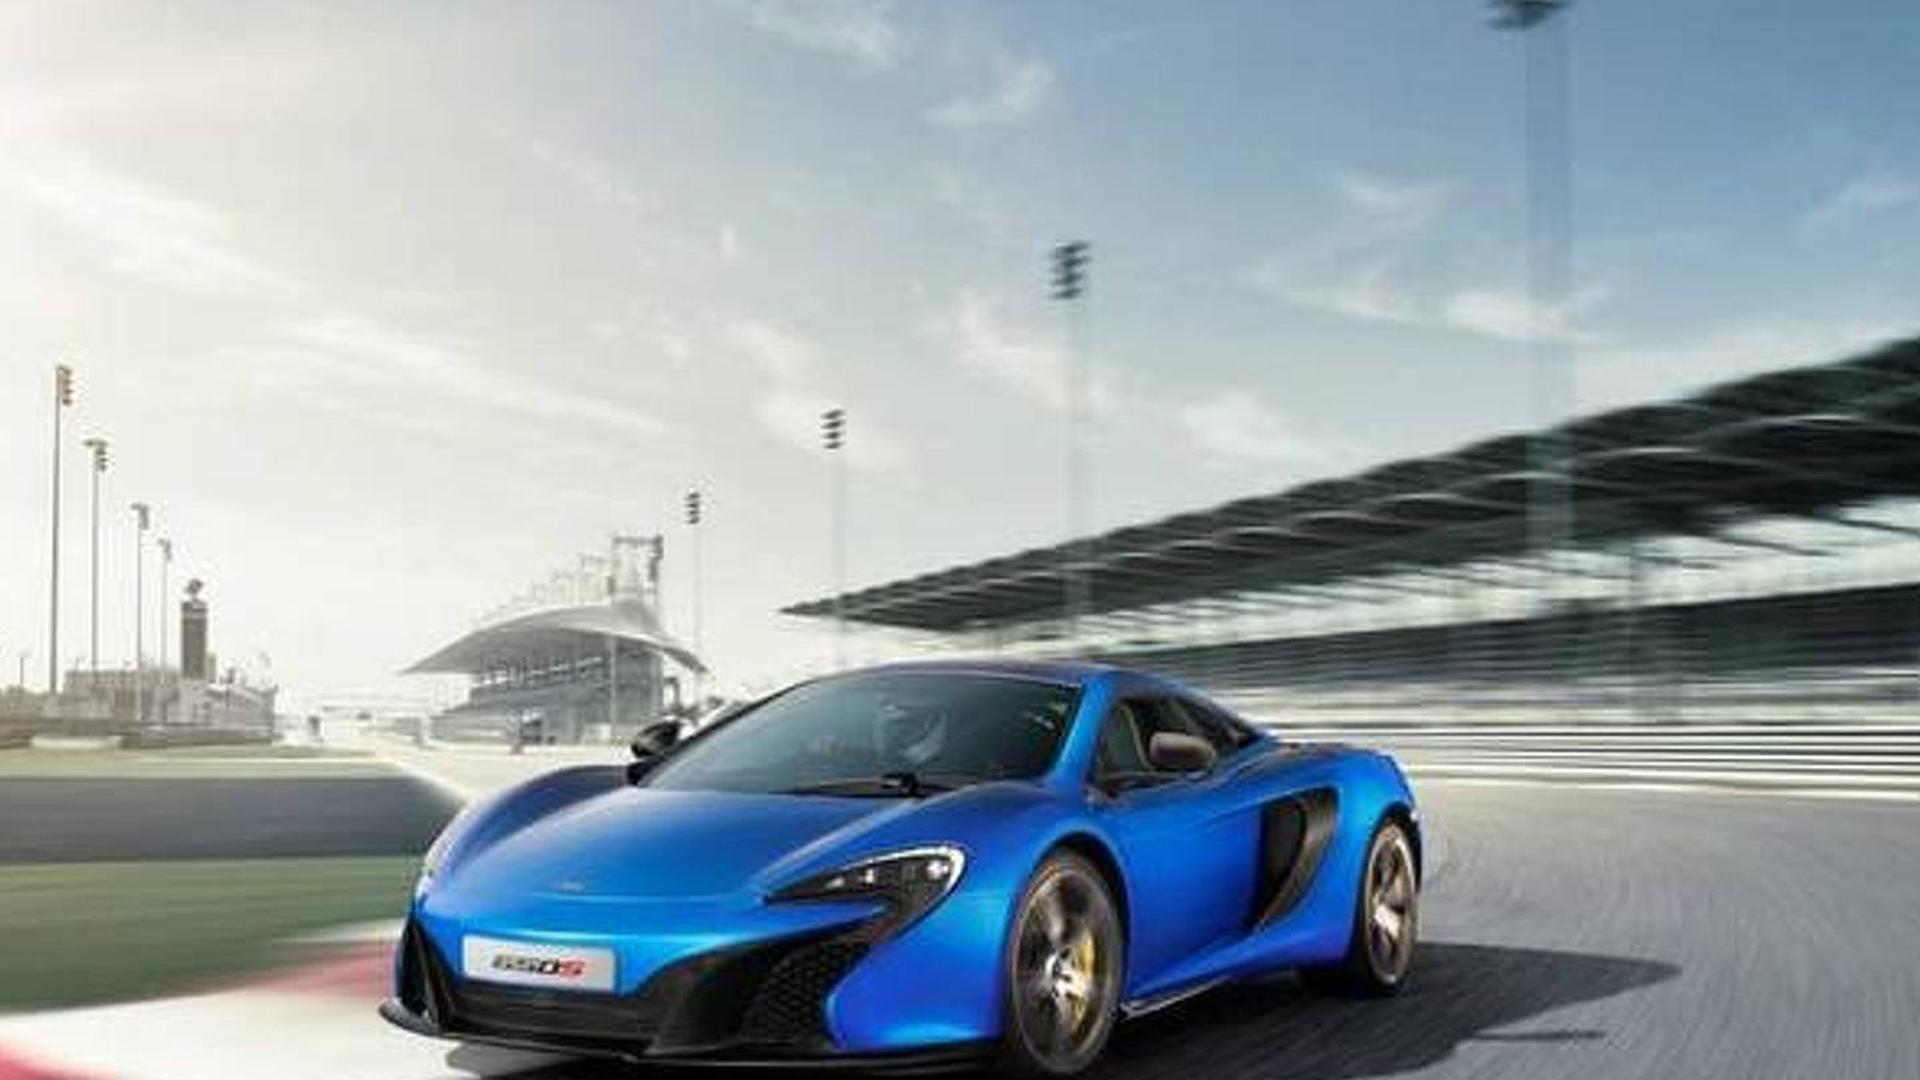 McLaren 650S images and details surface after private presentation